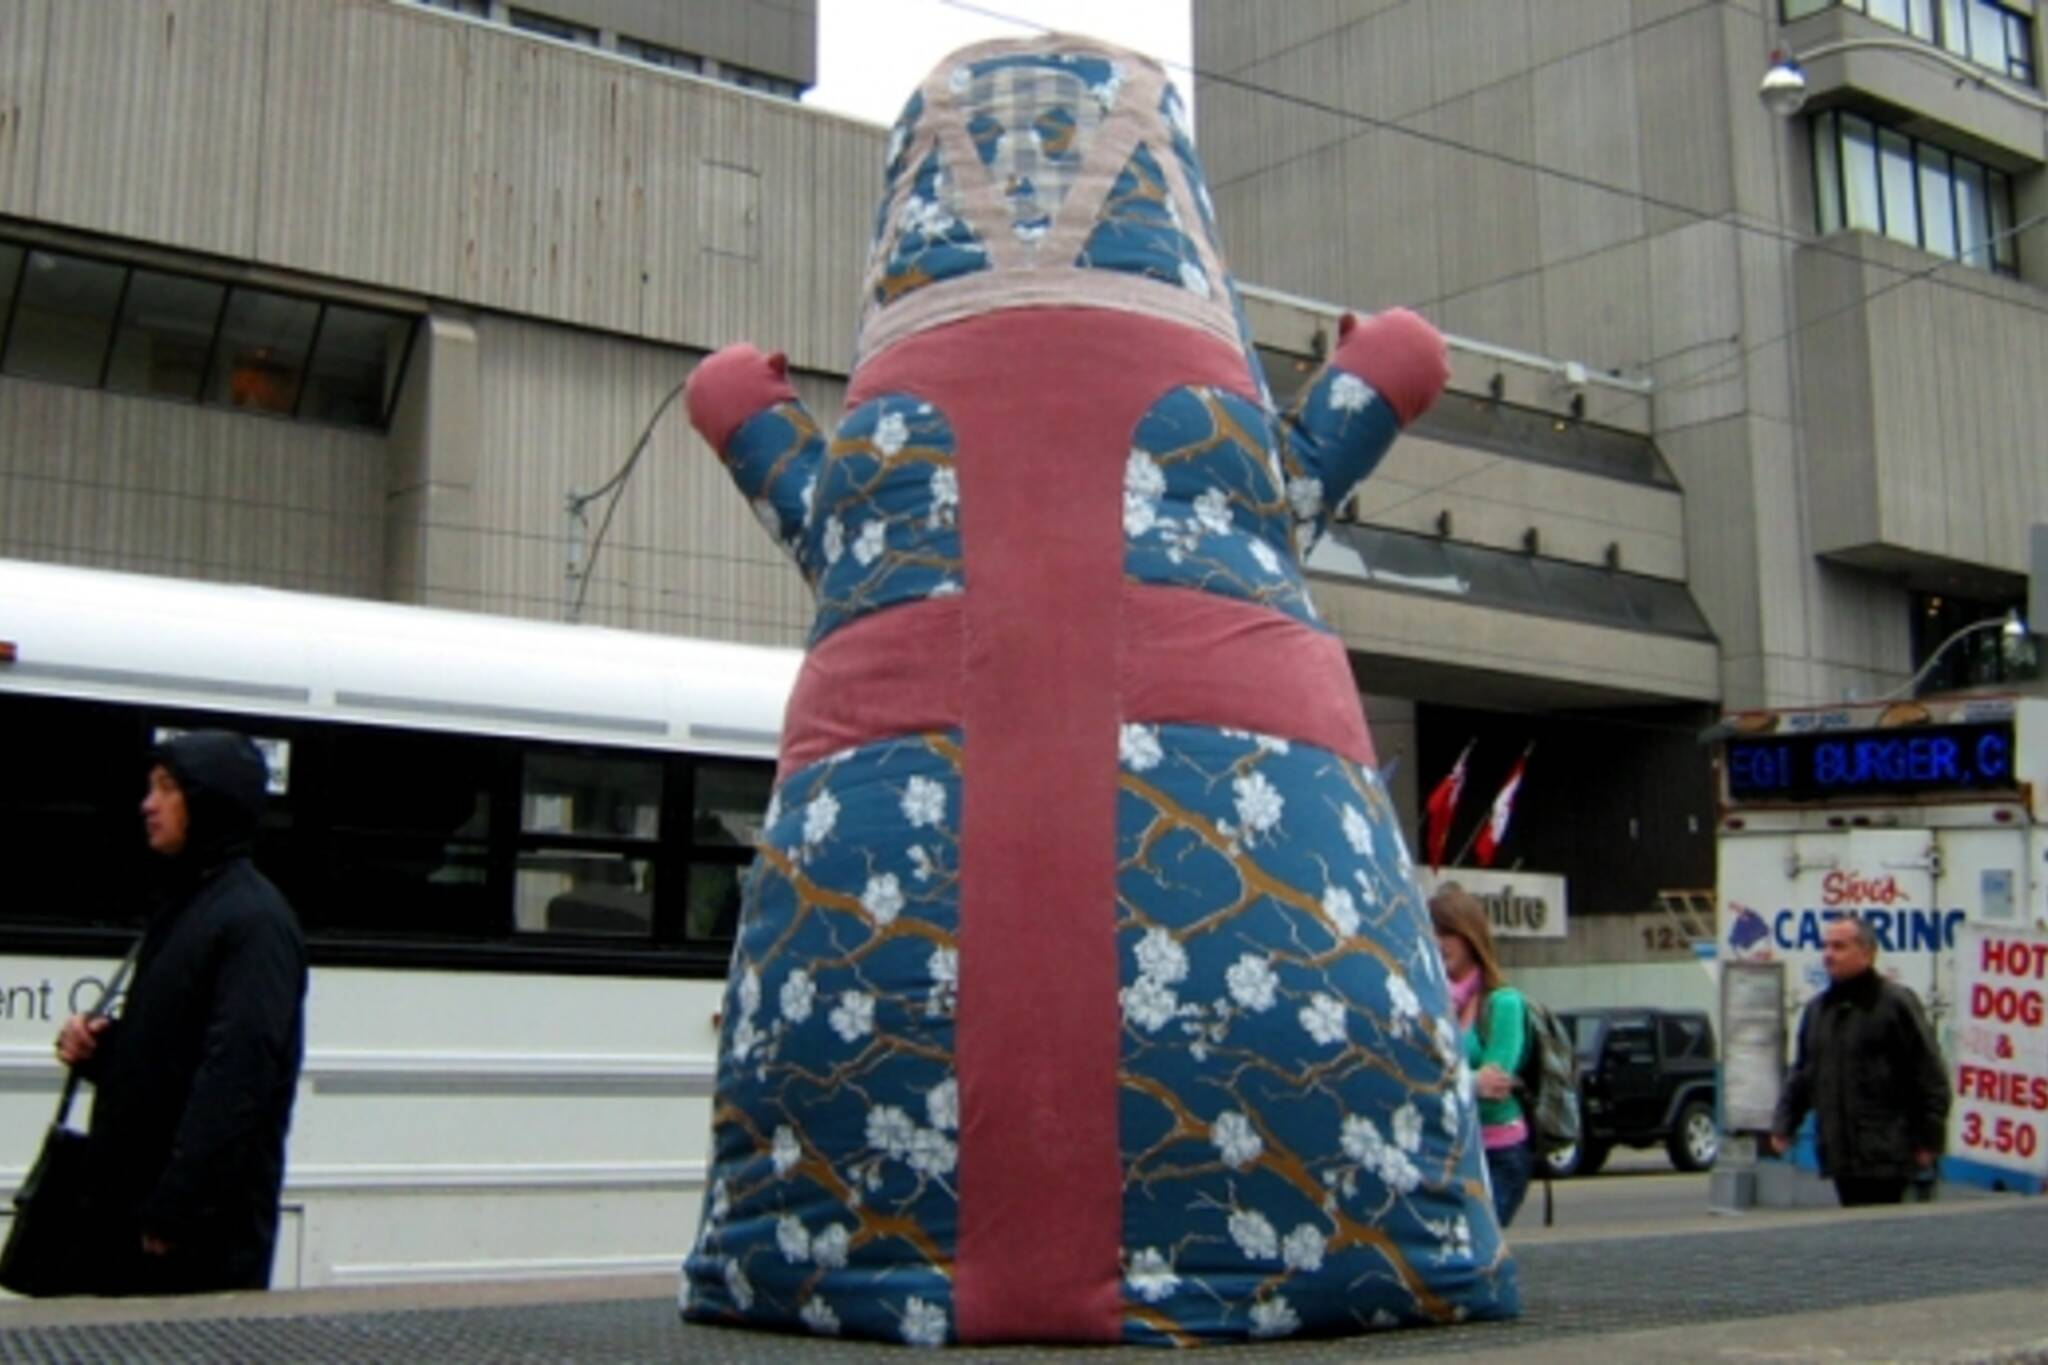 Poster Child's big inflated doll at Nathan Phillips Square